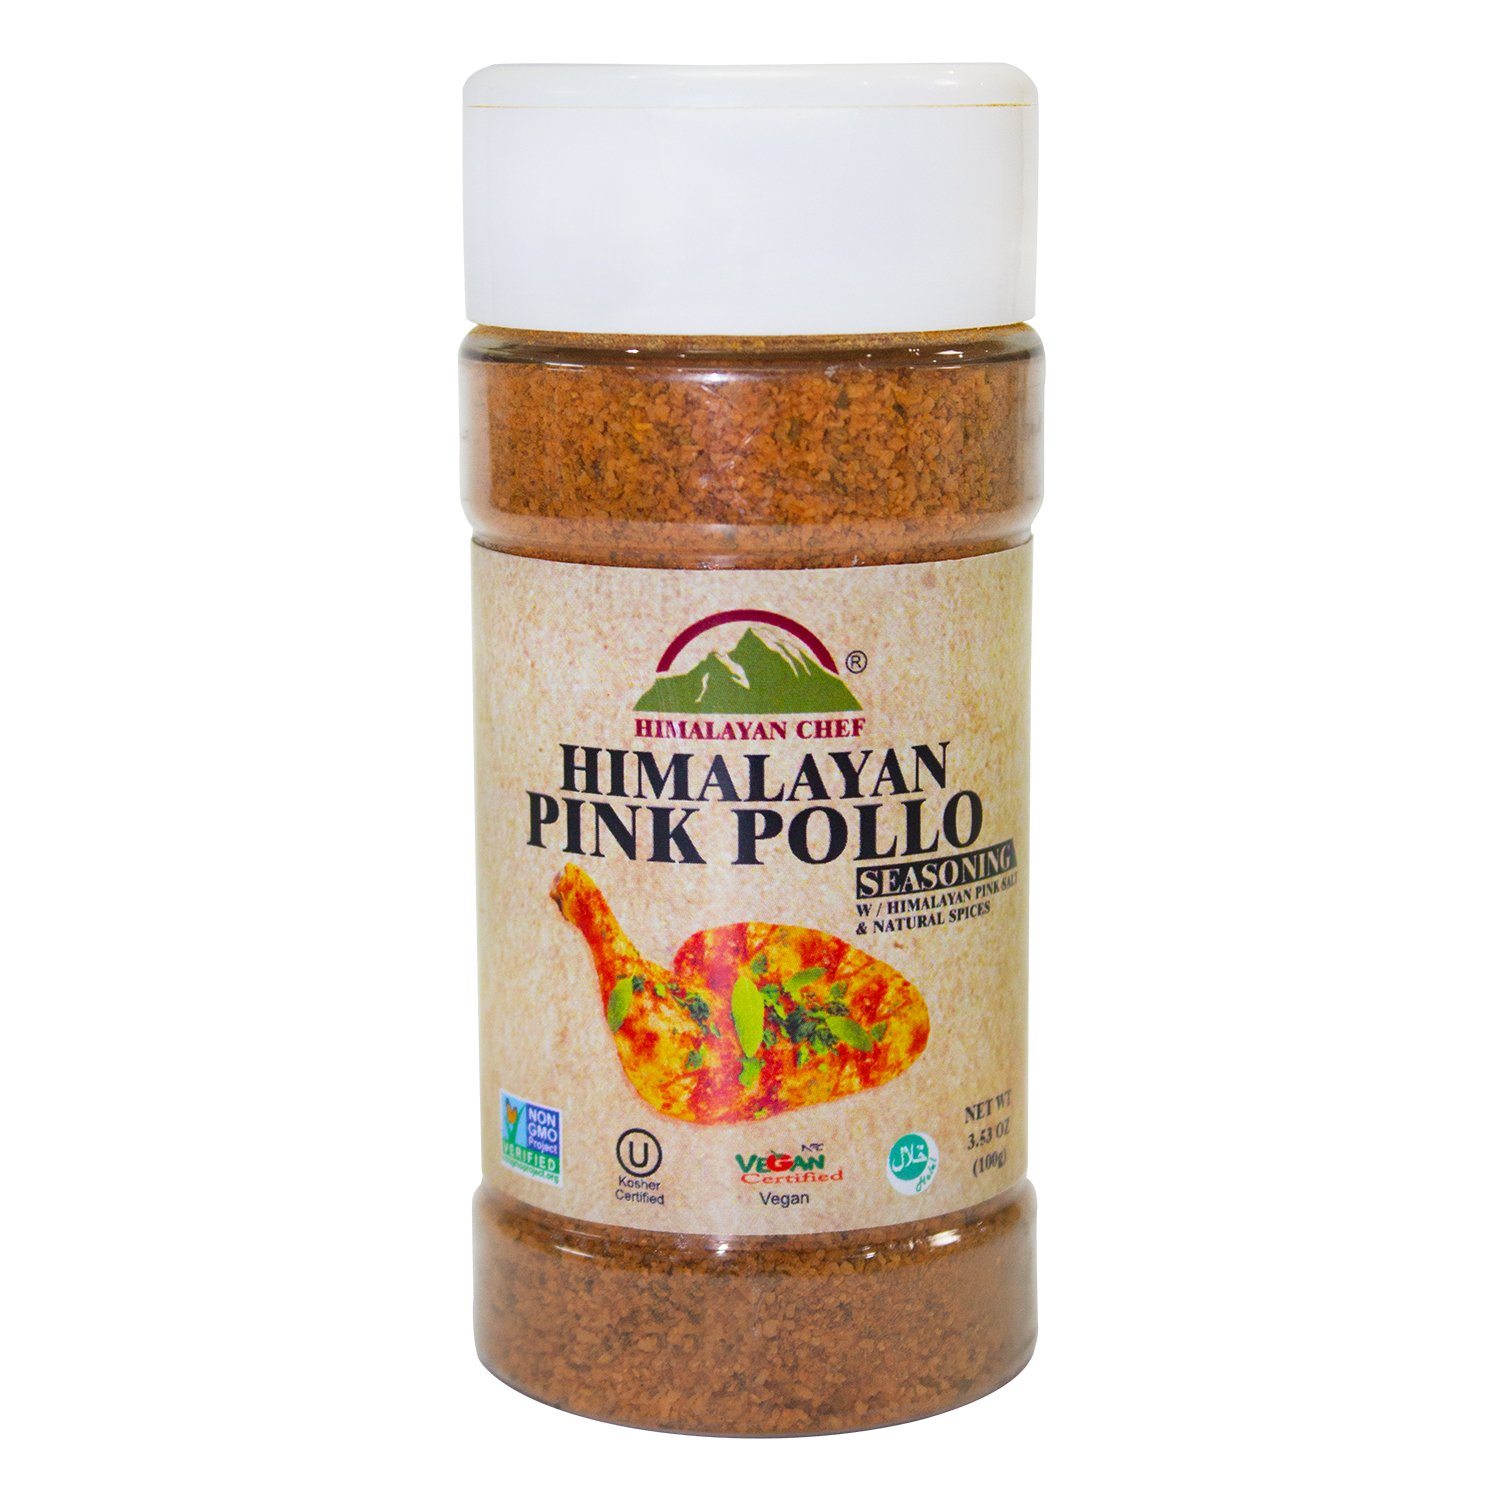 Himalayan Chef Pink Pollo Seasoning Jar, 3.53 Ounce,Blend of celery seeds, paprika and spices (Pack of 6)